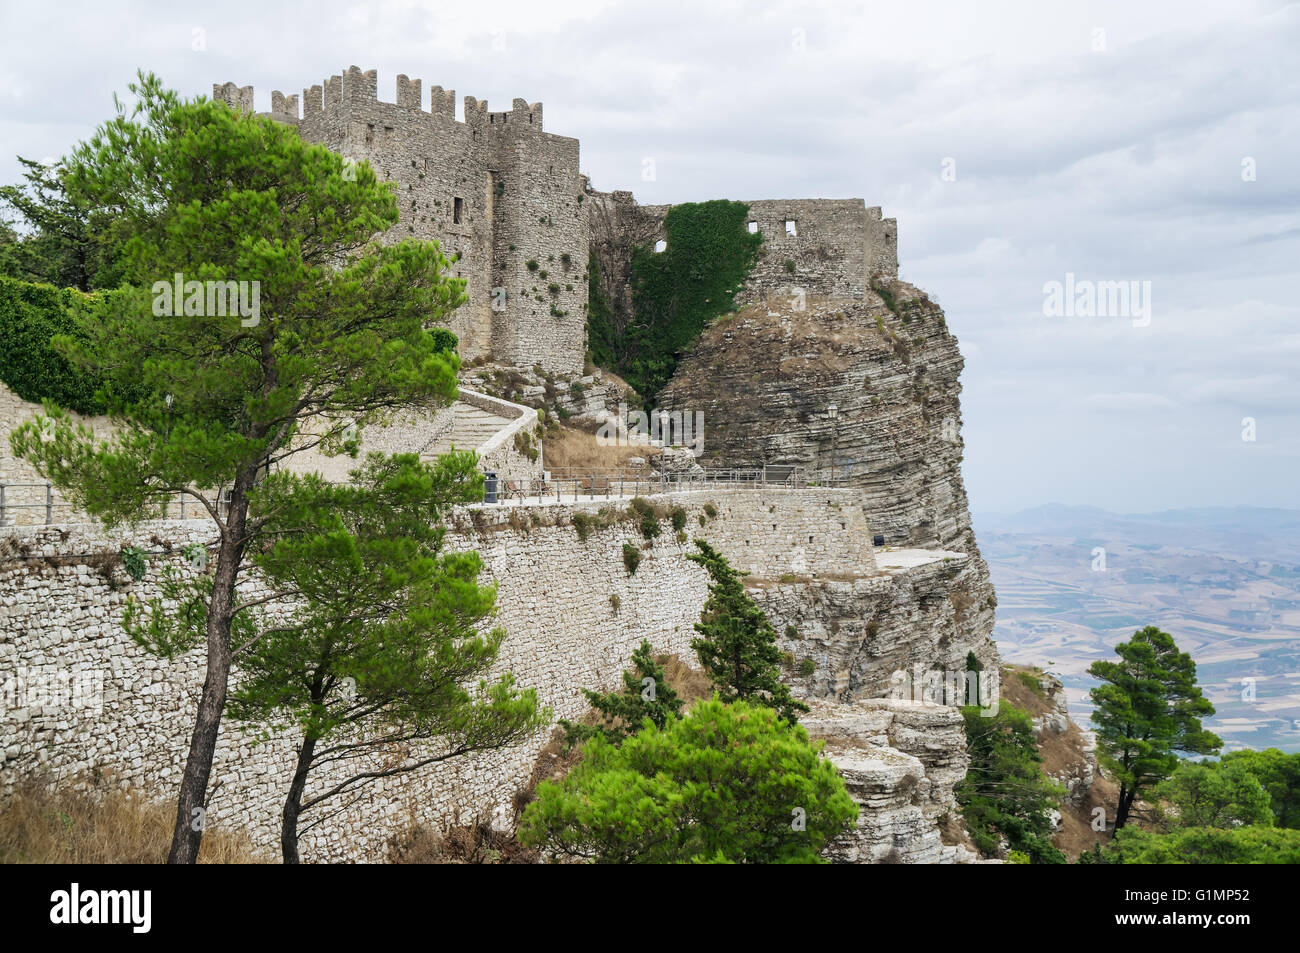 Old Erice town, Trapani. Sicily, Italy - Stock Image